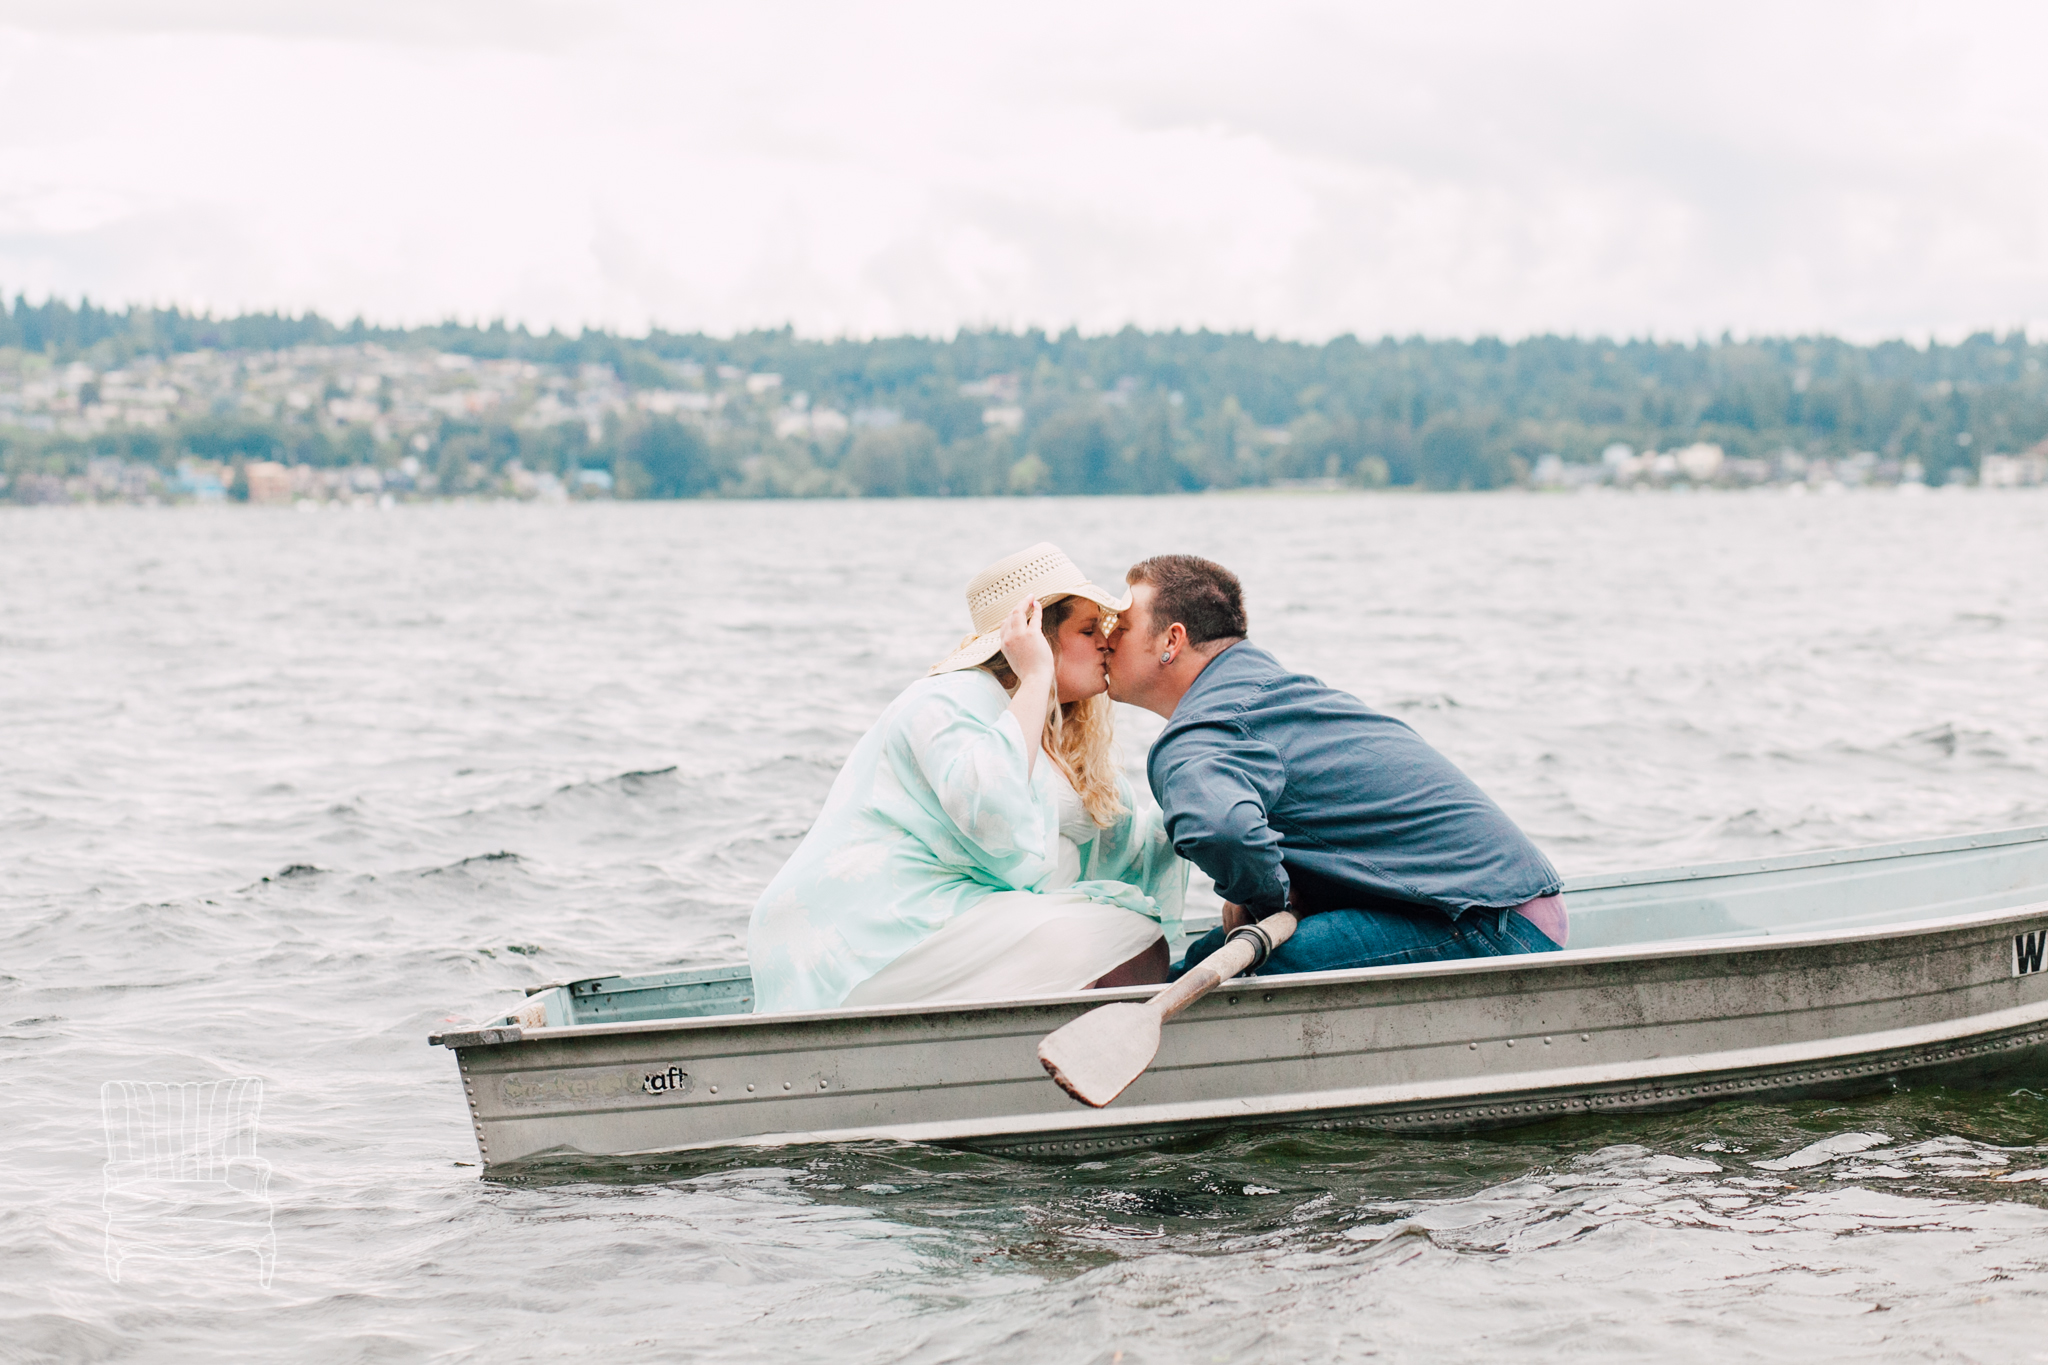 seattle-engagement-photographer-lake-washington-katheryn-moran-ashley-zach-17.jpg